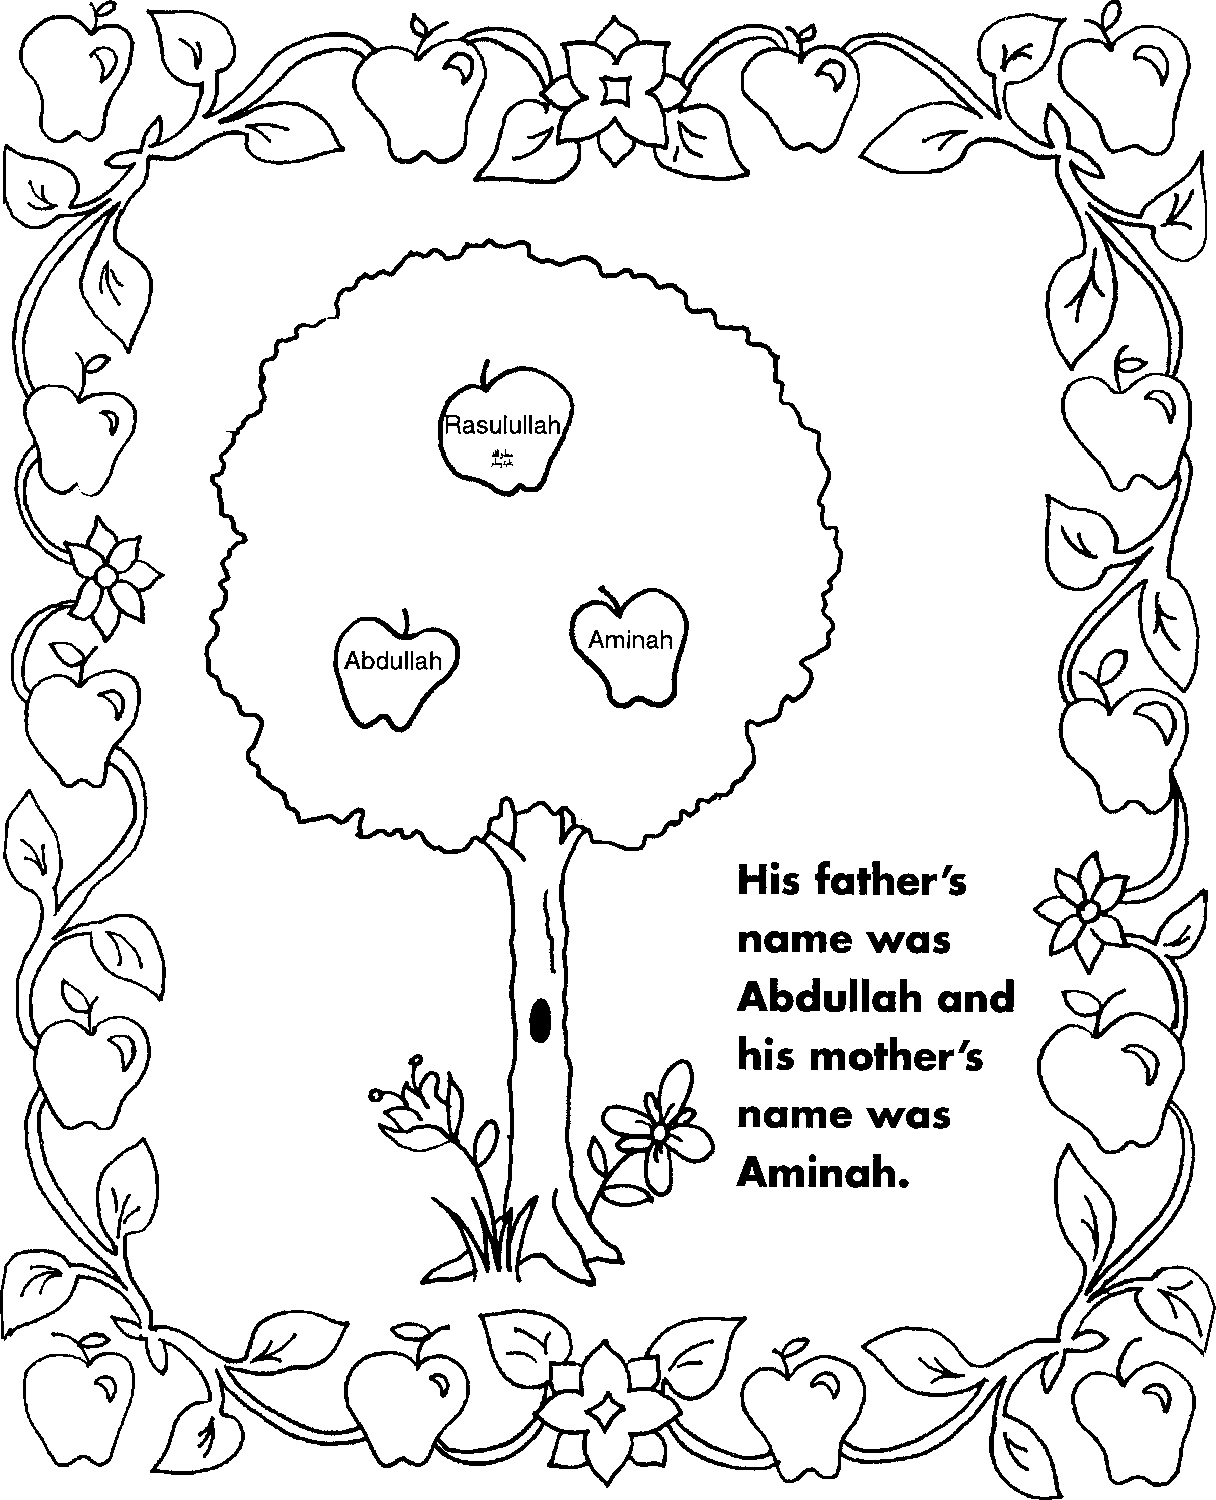 Frog Life Cycle Coloring Pages Froglifecycle Jpg  Search